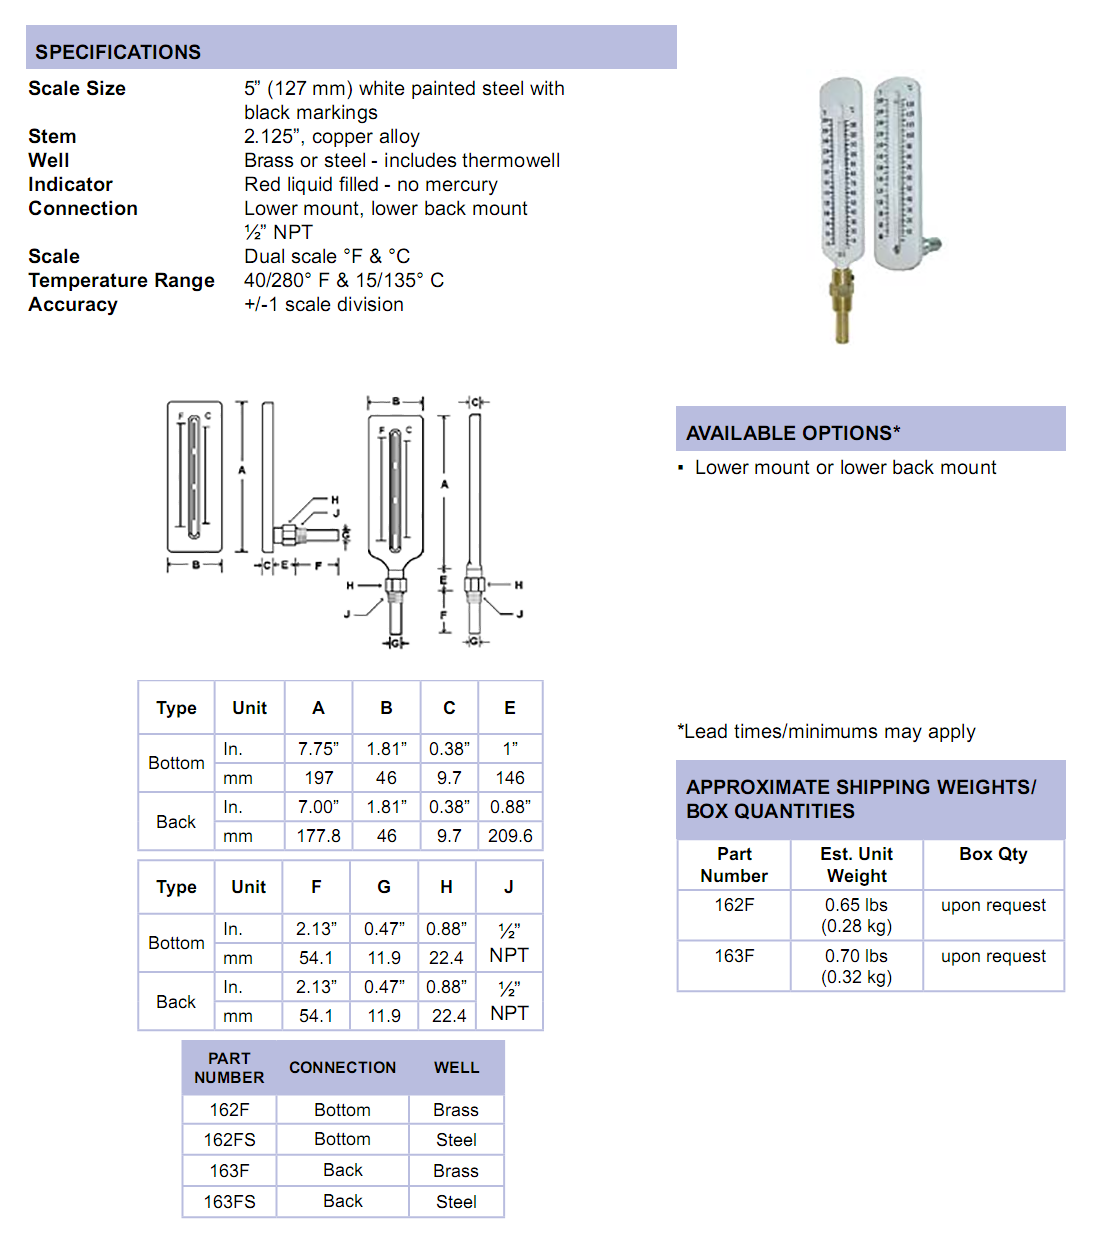 160-series-5-inch-scale-thermometer-specifications